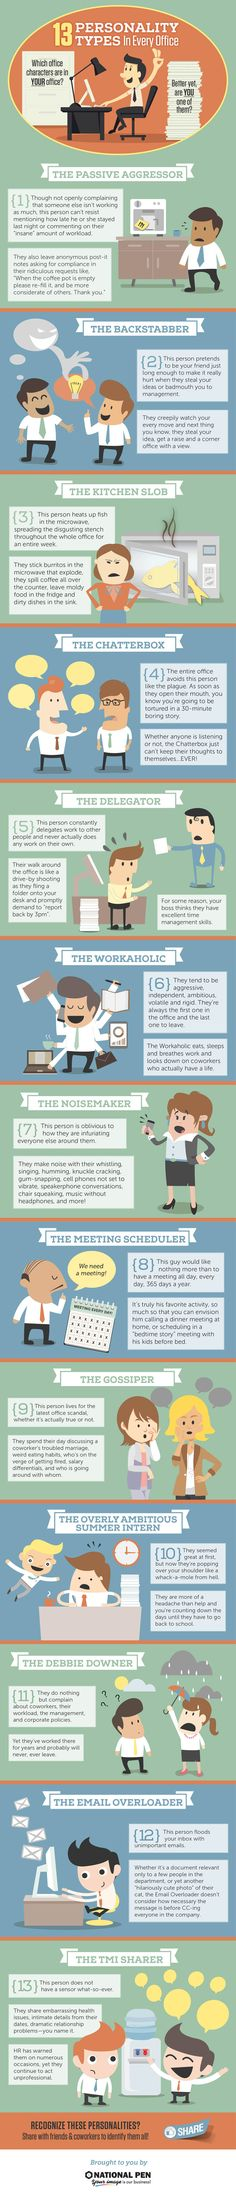 13 Personality Types in Every Office [INFOGRAPHIC] :: Quick and Dirty Tips ™